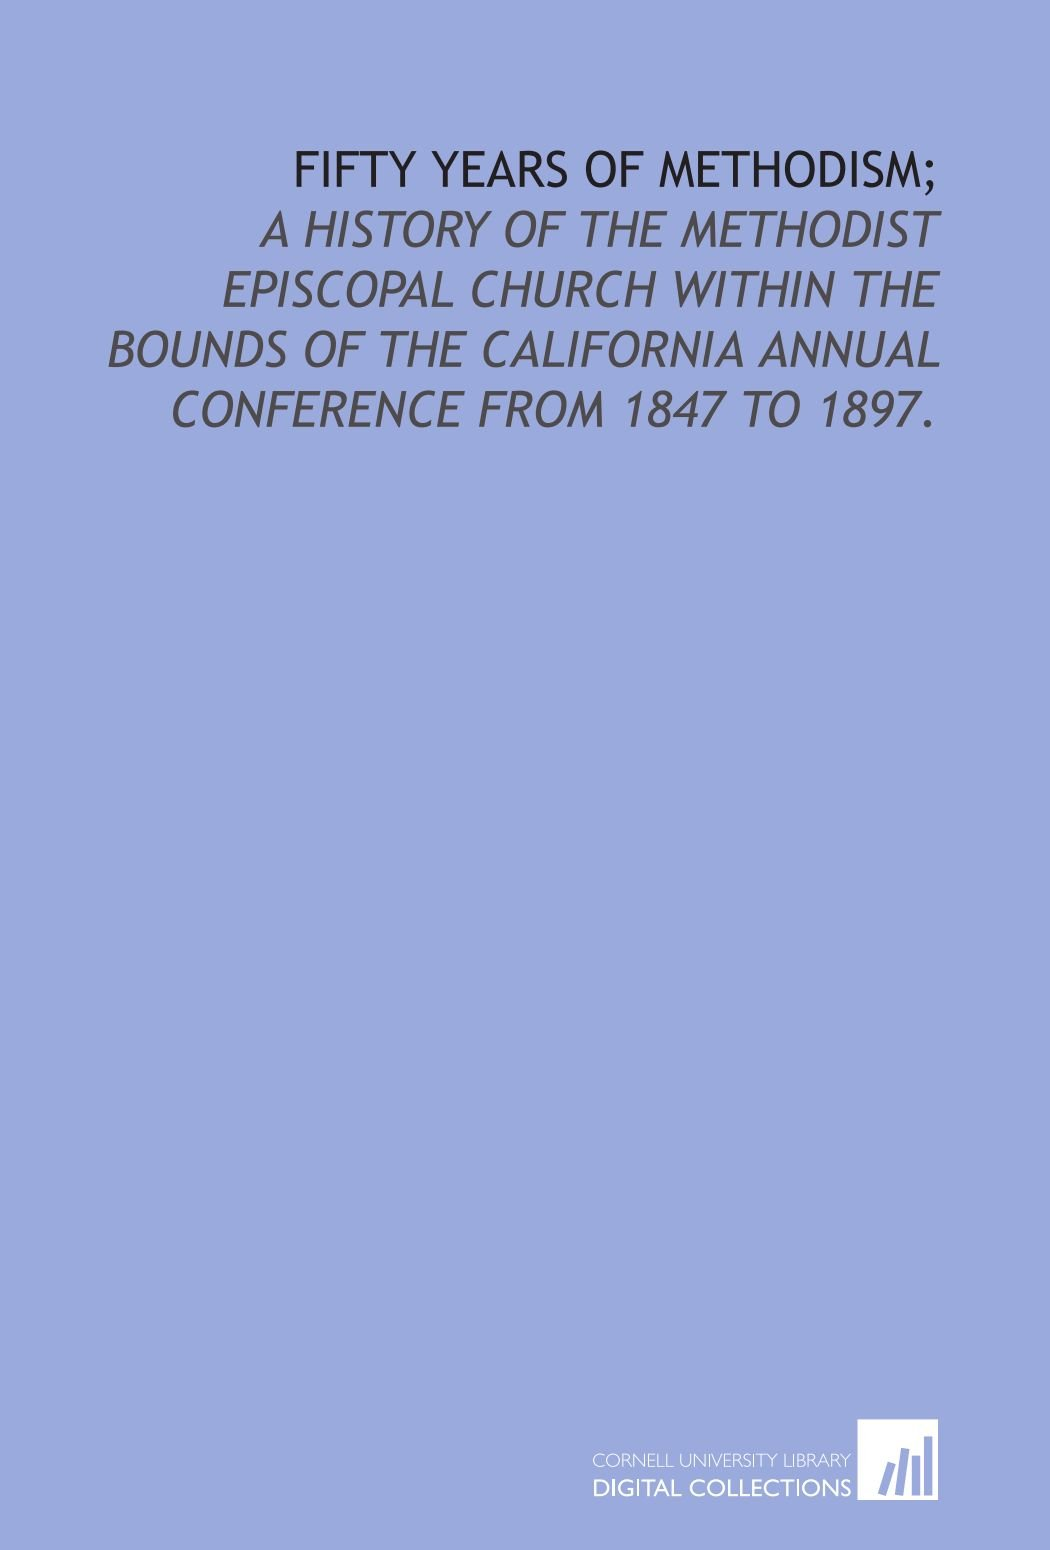 Fifty years of Methodism;: a history of the Methodist Episcopal Church within the bounds of the California annual conference from 1847 to 1897. ebook